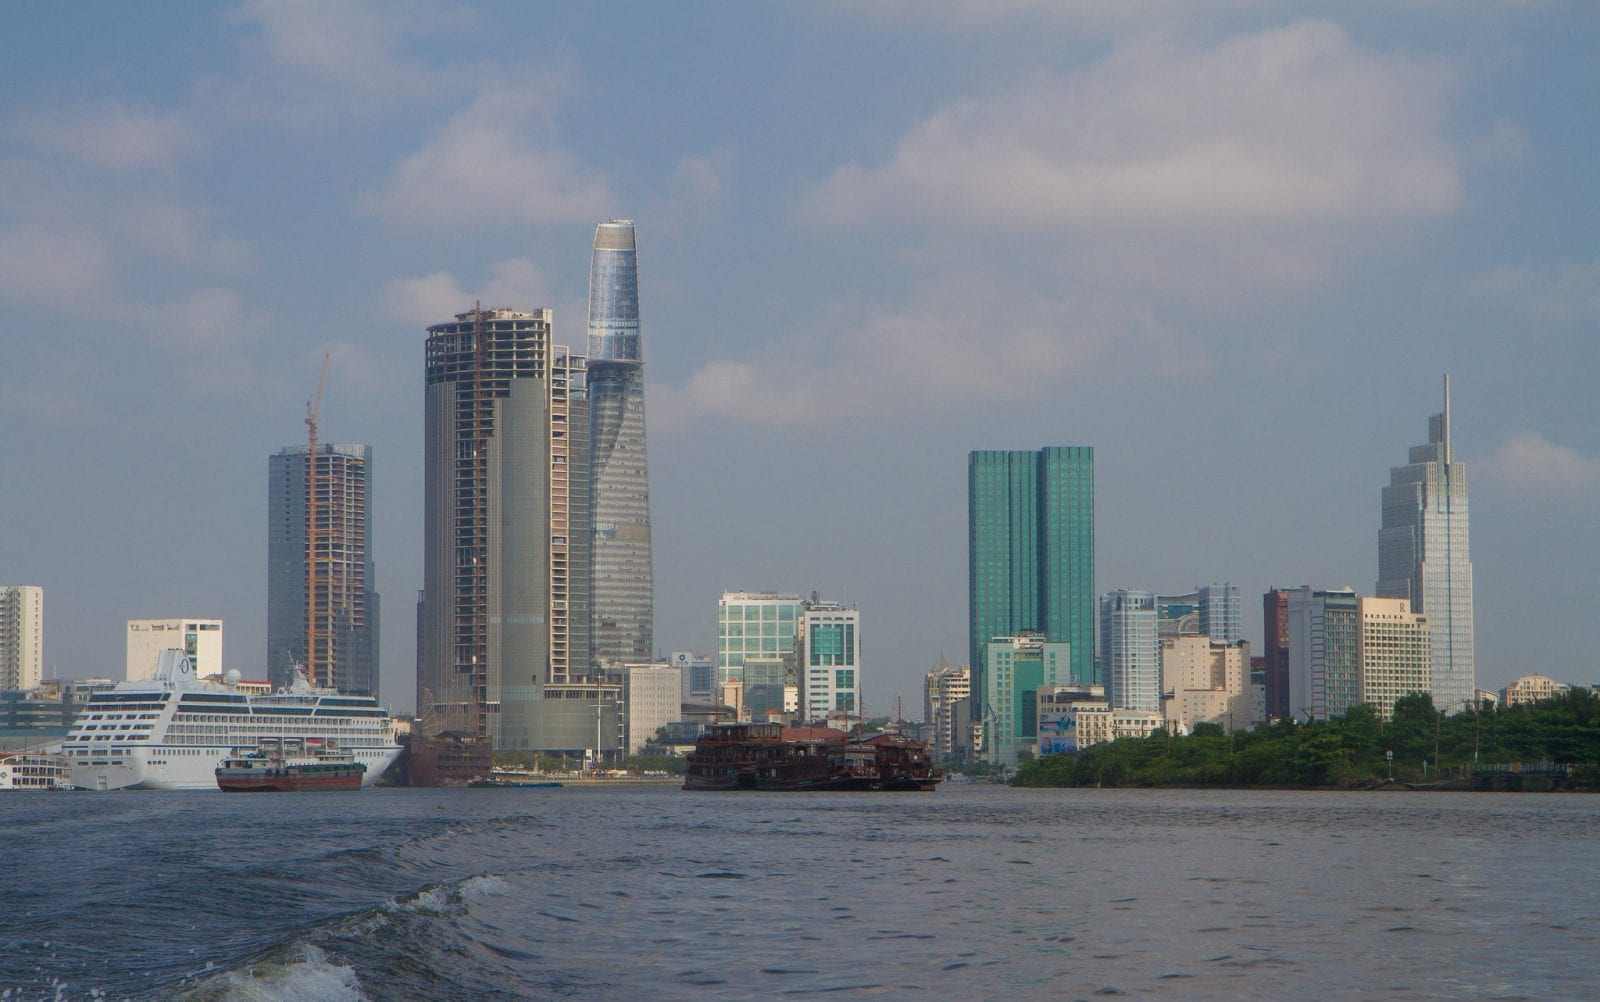 Image of the Ho Chi Minh City skyline with the Saigon One Tower visible